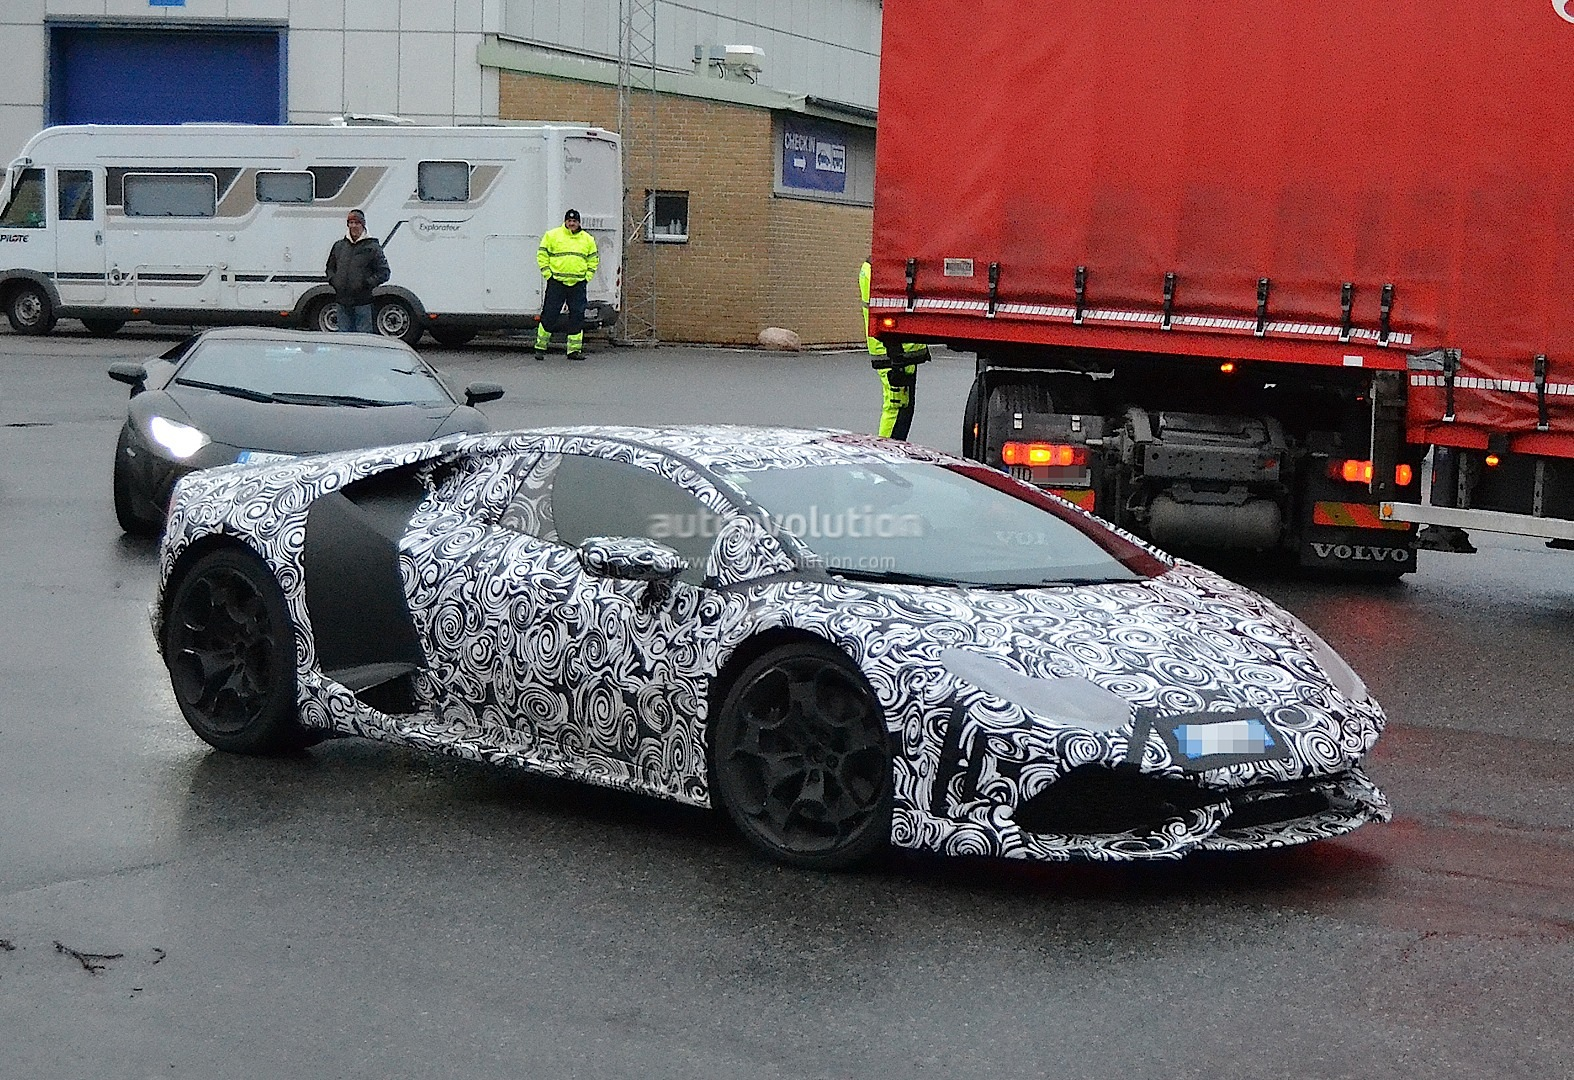 2013 - [Lamborghini] Huracán LP610-4  - Page 4 Lamborghini-cabrera-shows-retro-wheels-in-latest-spyshots-1080p-6